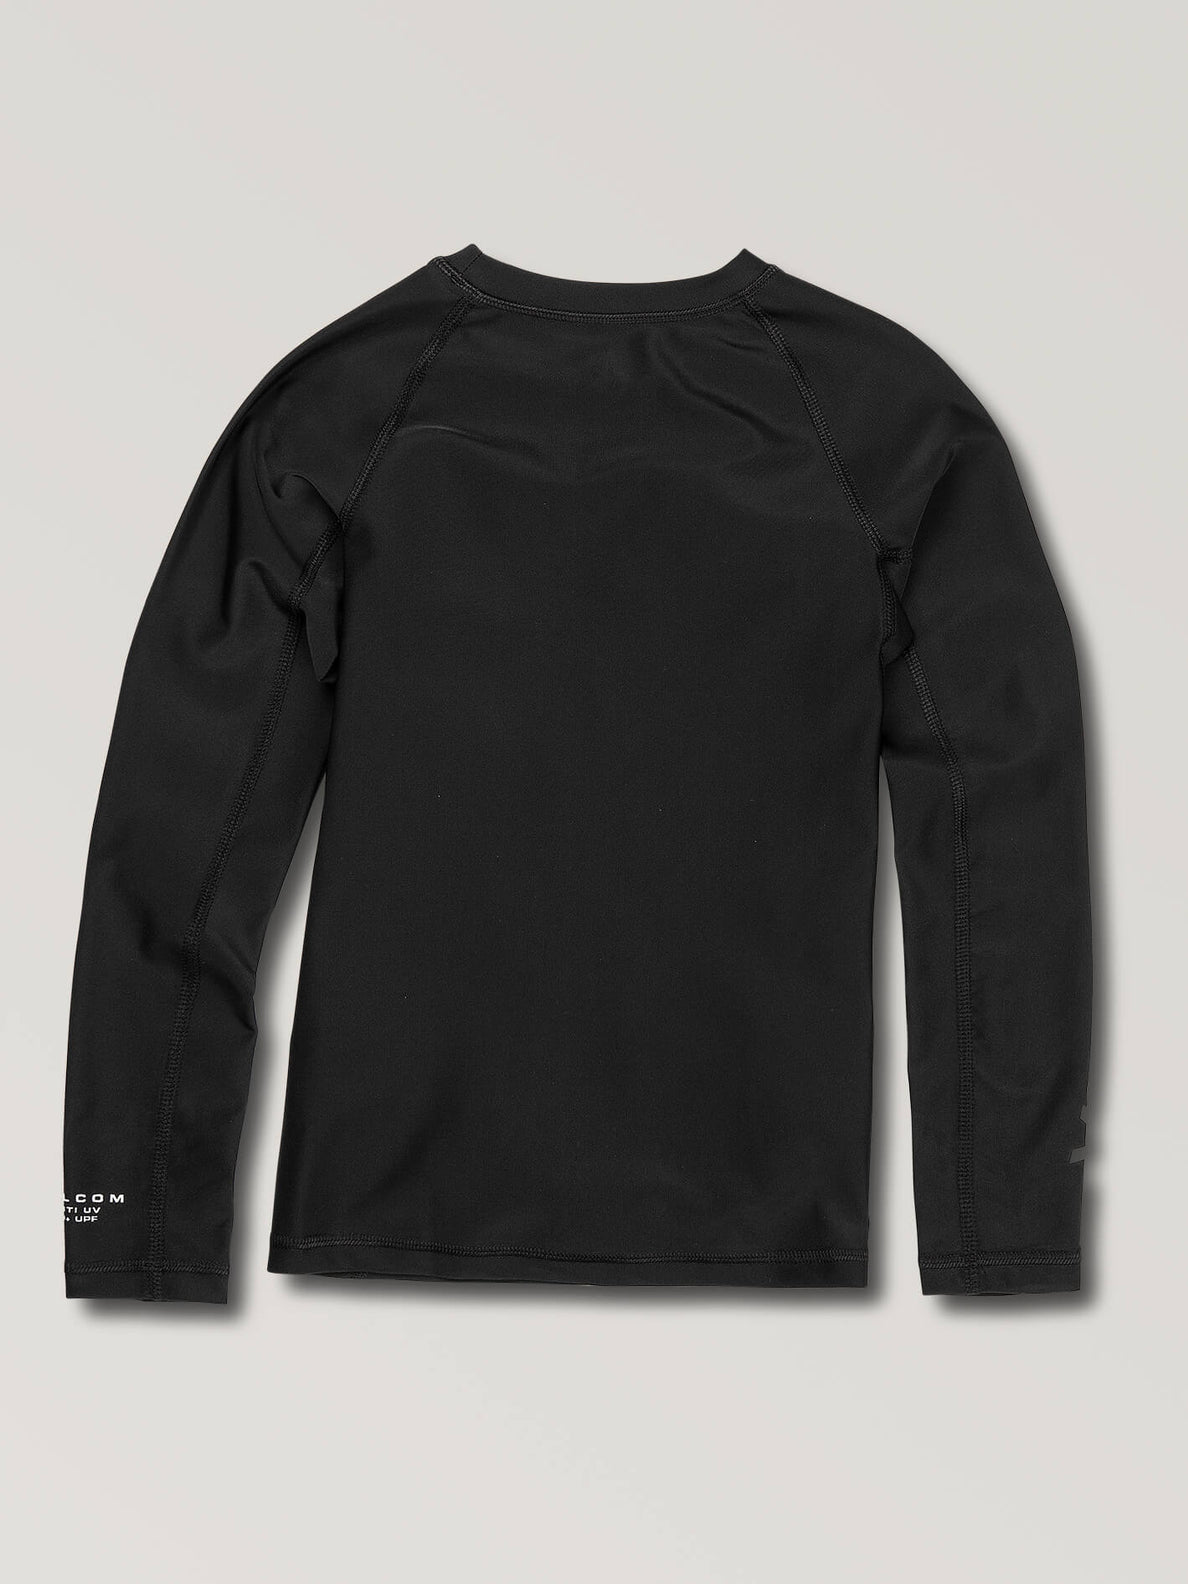 Big Boys Lido Solid Long Sleeve Rashguard In Black, Back View